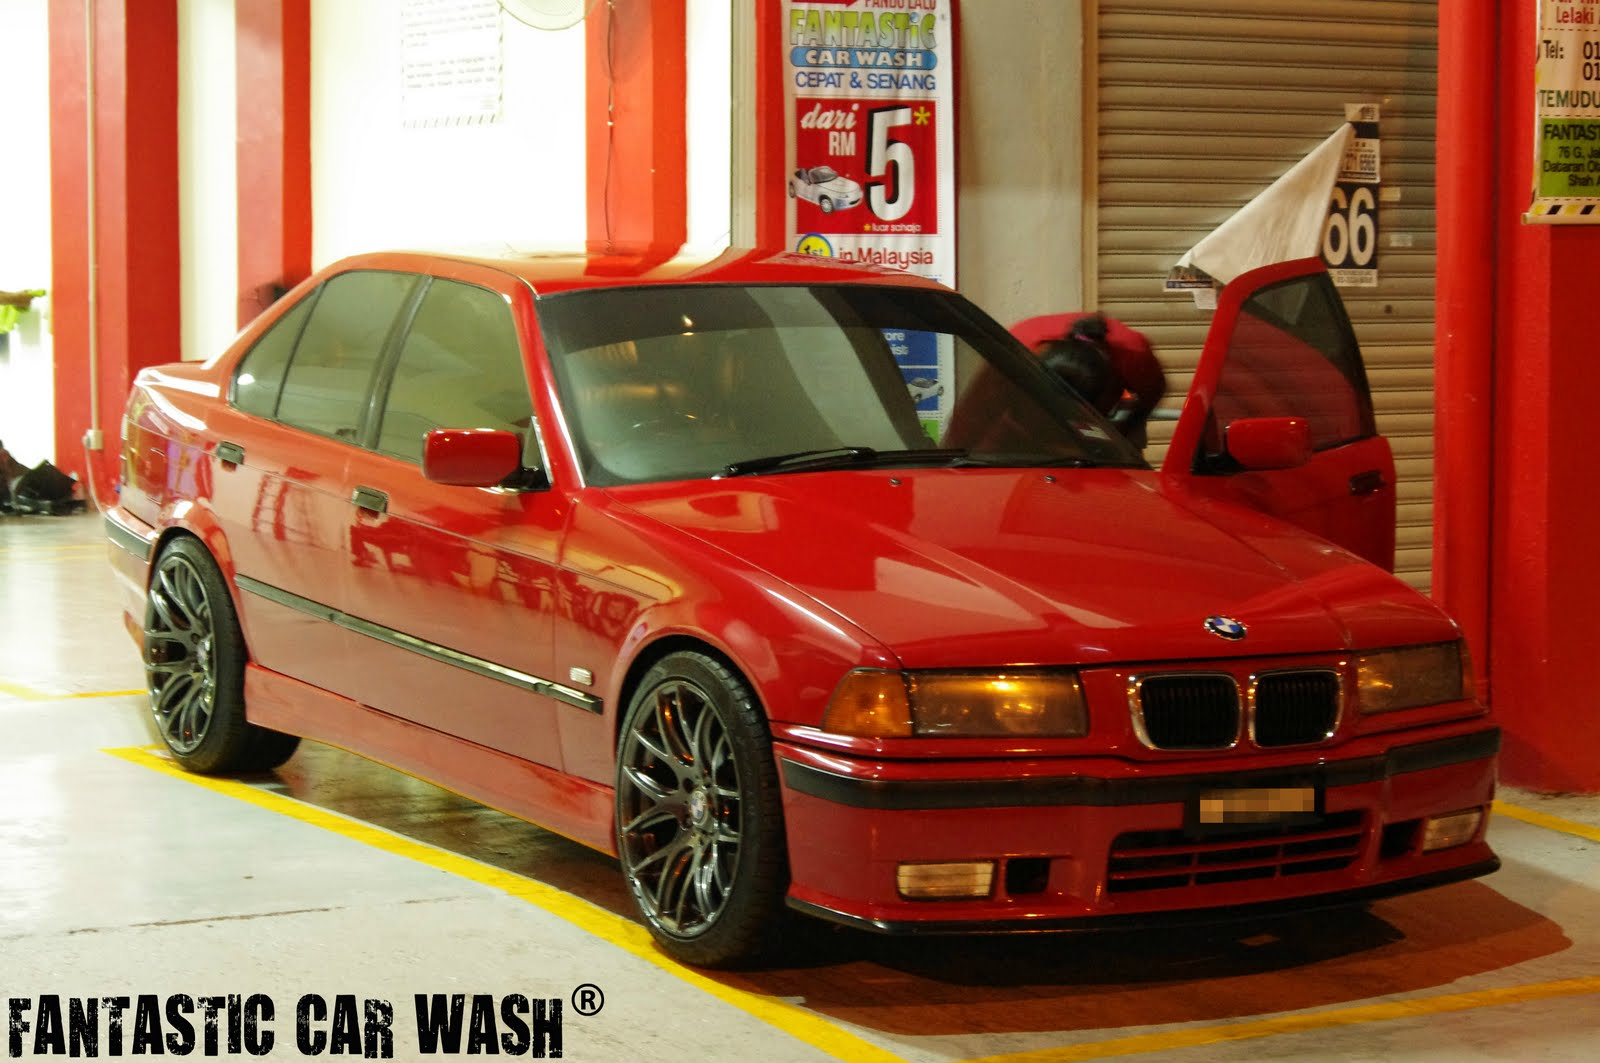 Fantastic Car Wash Blogspot